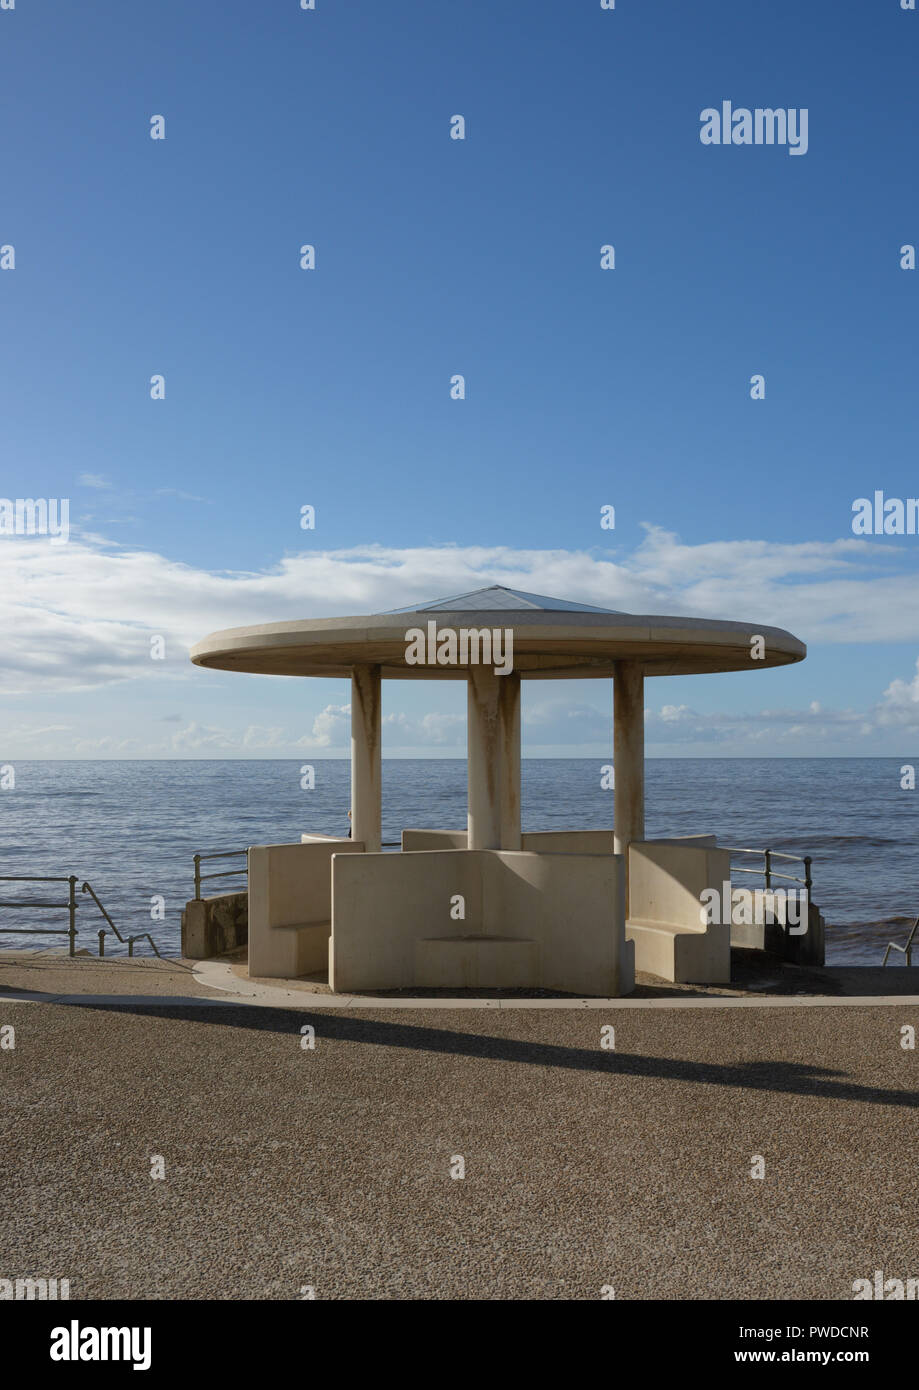 Pre cast concrete seafront shelter with curved roof on Cleveleys promenade, sunny evening light with long shadows, Fylde coast uk Stock Photo